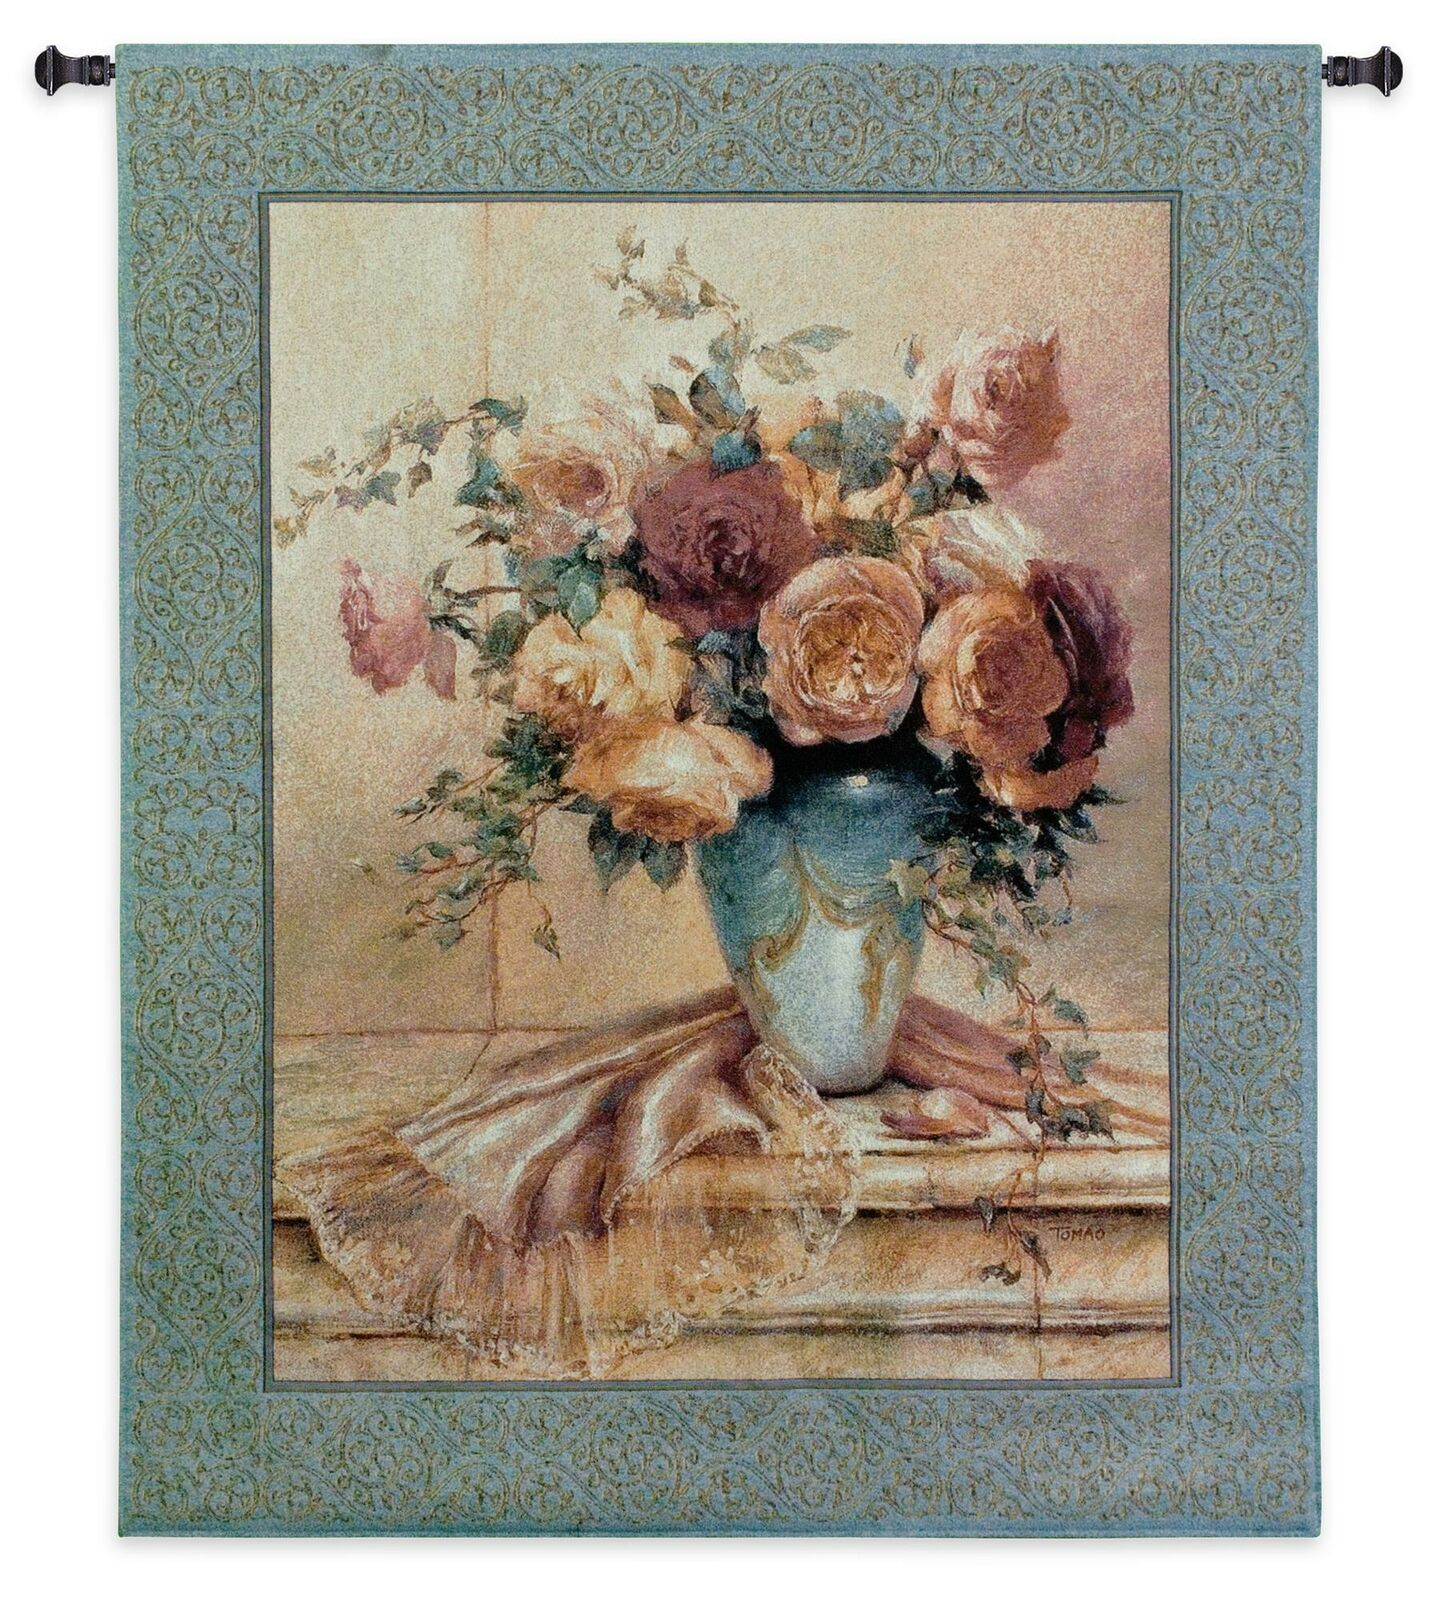 Jennie I North American Made Woven Floral Tapestry Wall Hanging